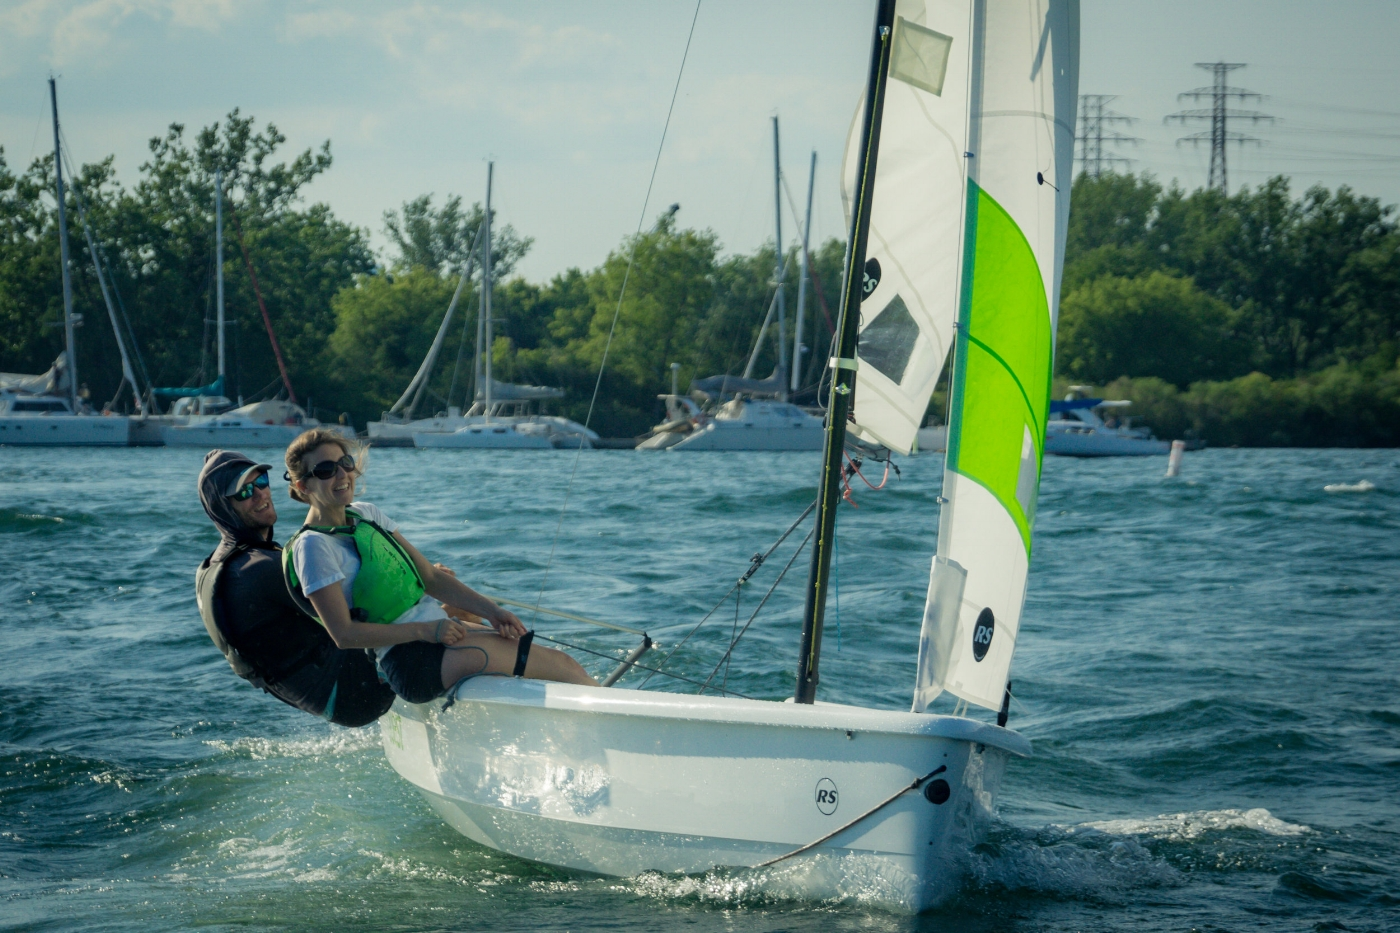 Sailing Fanatics - CANSail 3 intermediate advanced learn to sail fast and race in Toronto greater skill and confidence